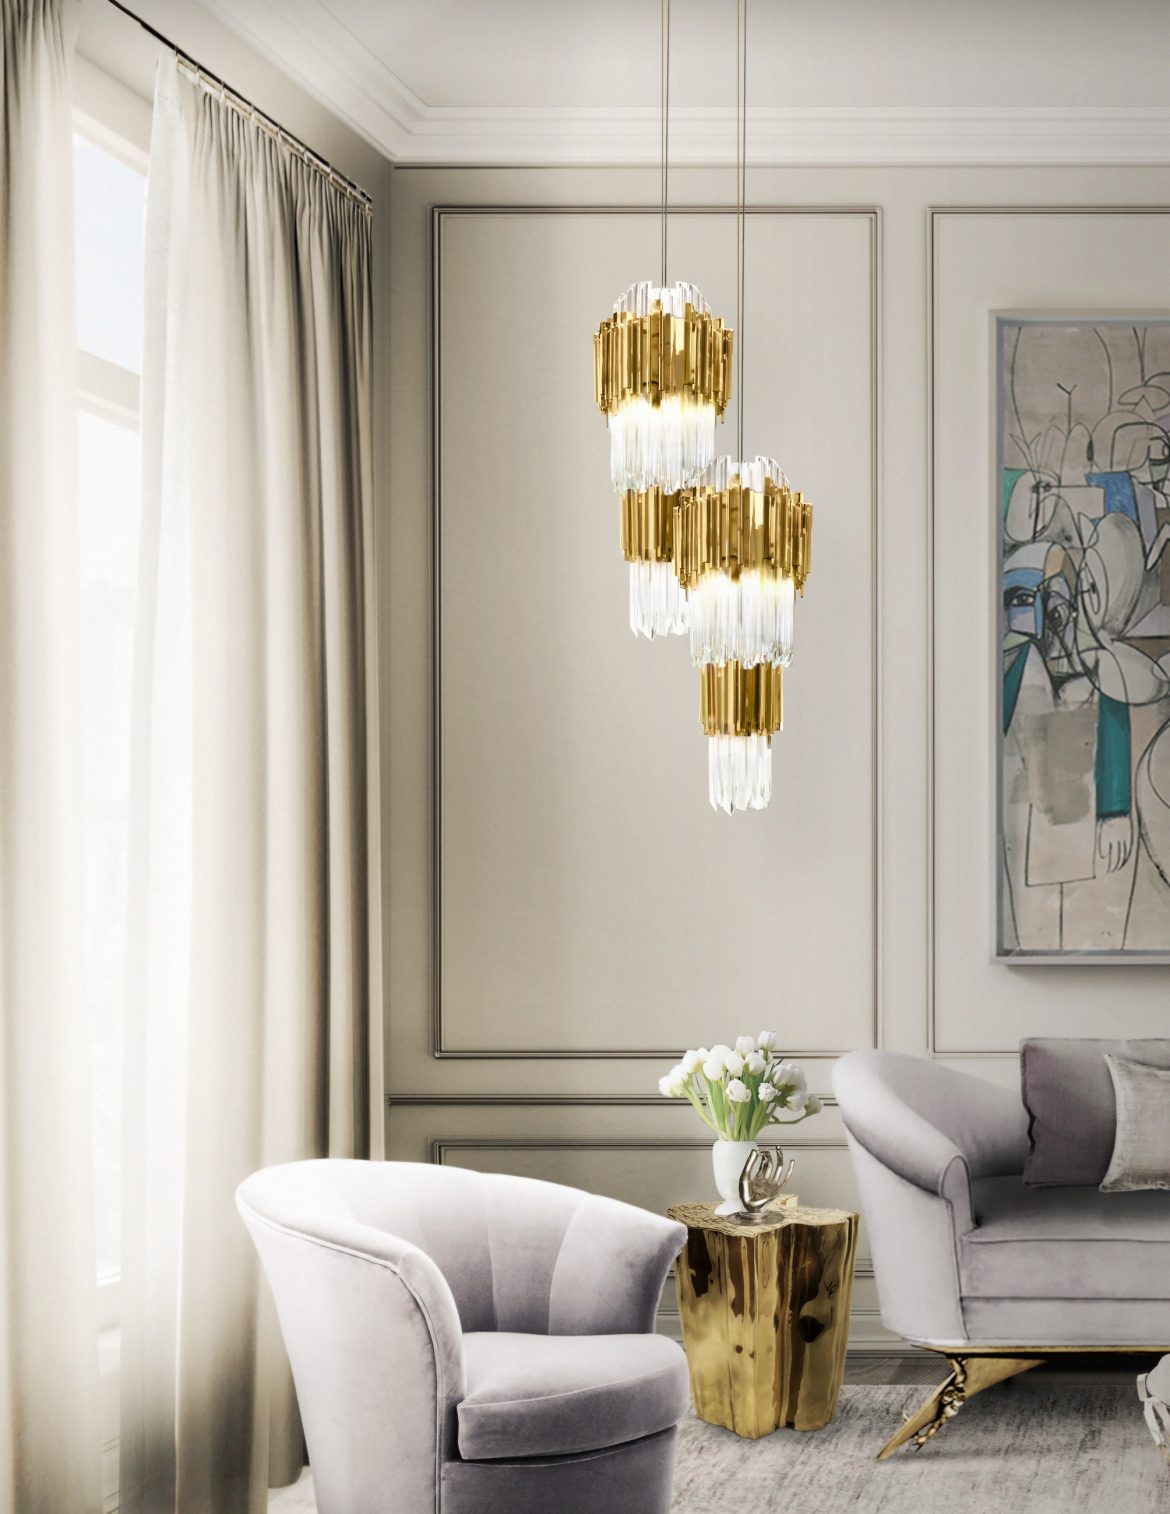 Milan Design Week: Trends to see at iSaloni 2017